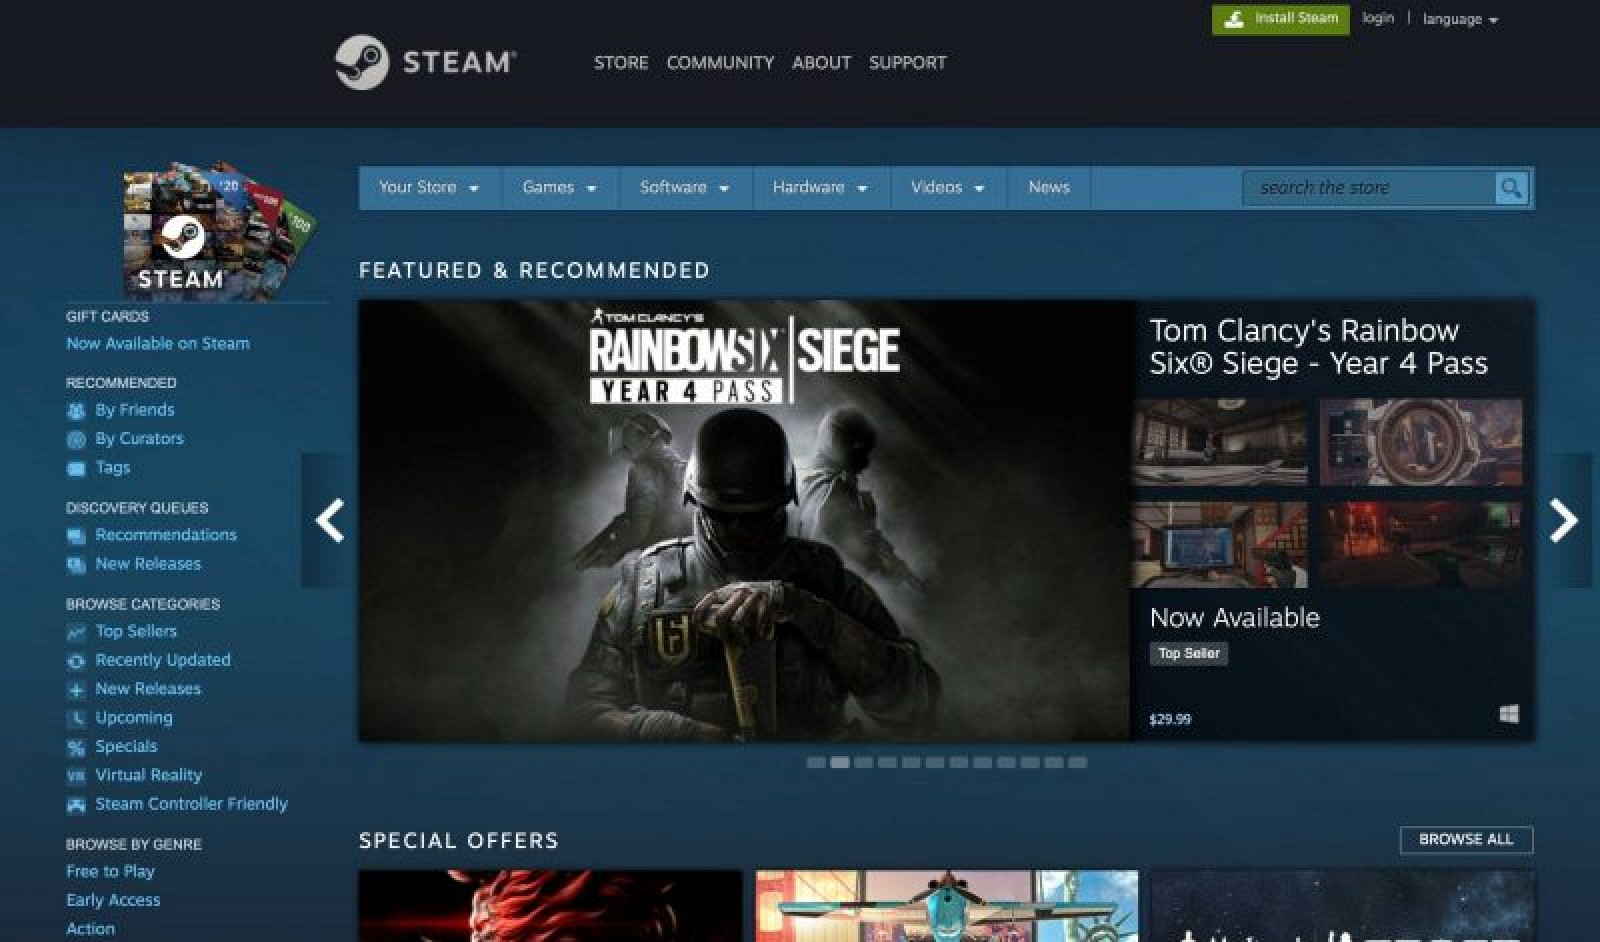 Play, connect, create and more. Install Steam today and start gaming!